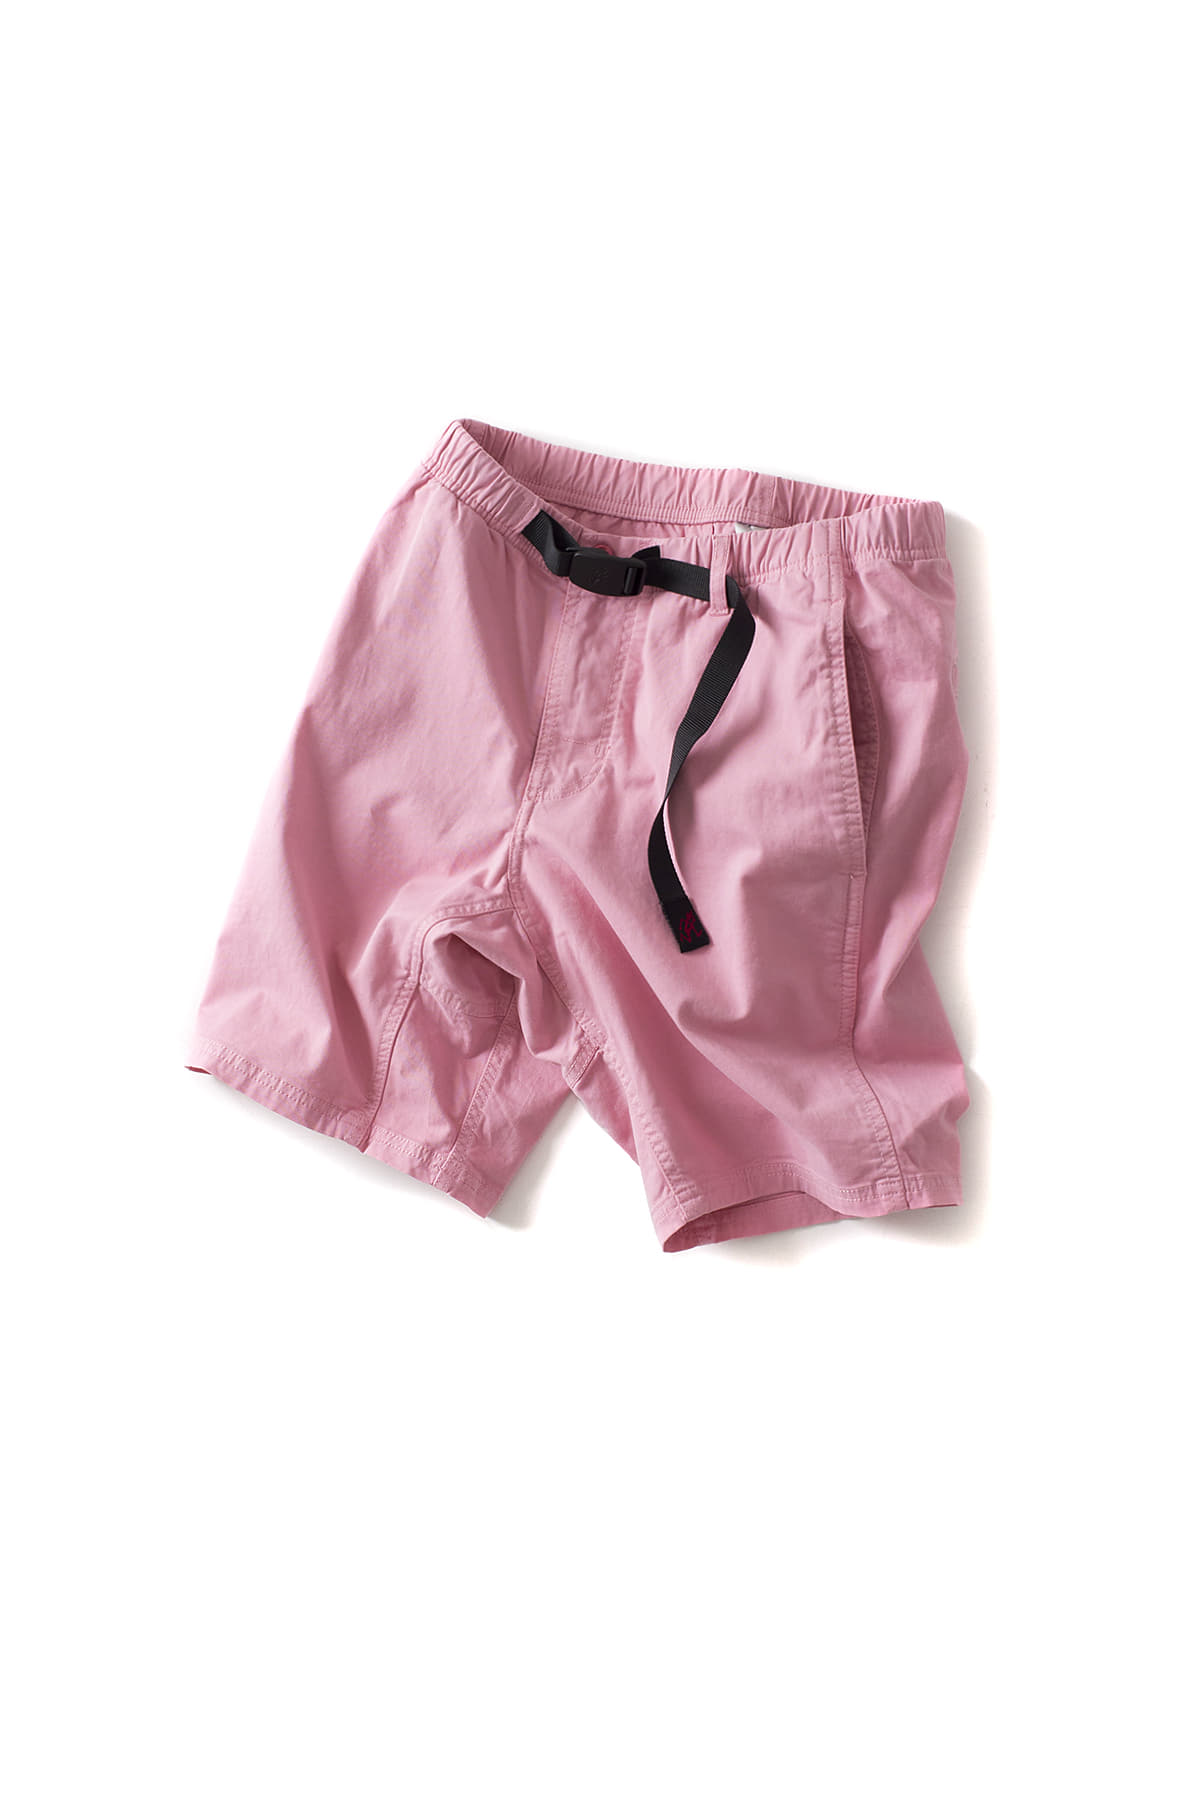 Gramicci : NN-Shorts (Rose)